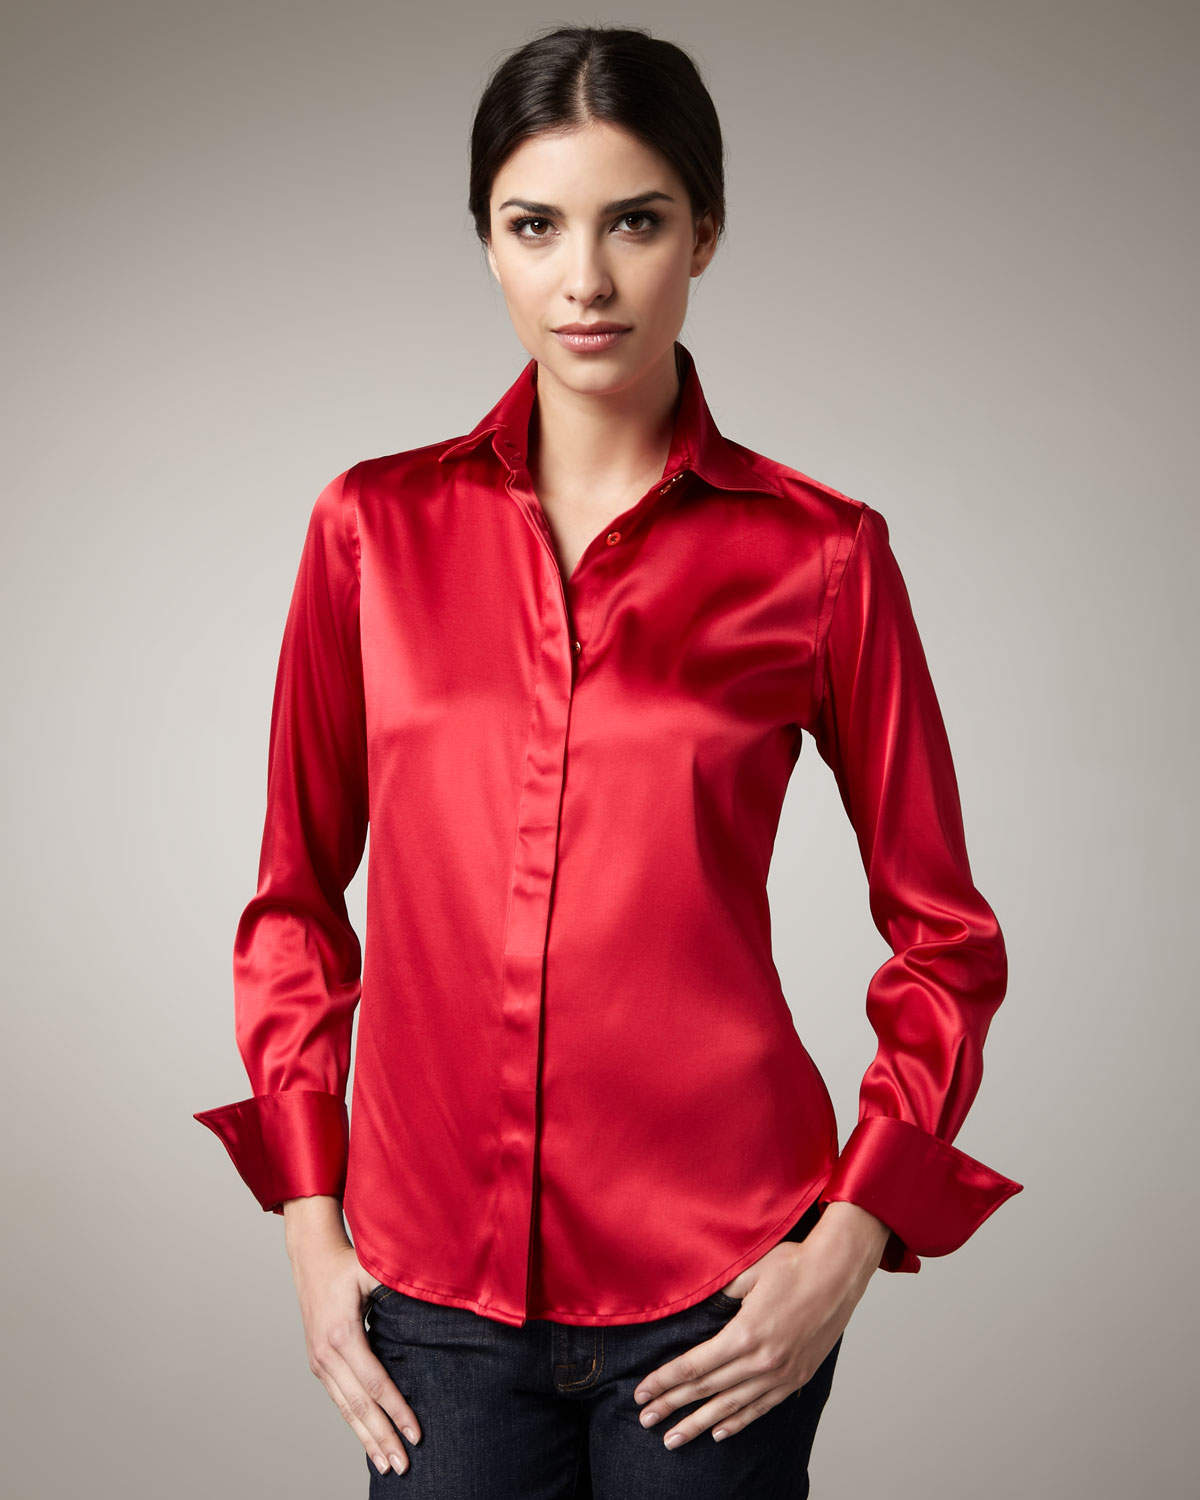 Find unbuttoned blouse Stock Images in HD and millions of other royalty-free stock photos, illustrations, and vectors in the Shutterstock collection. Thousands of new, high-quality pictures added every day.